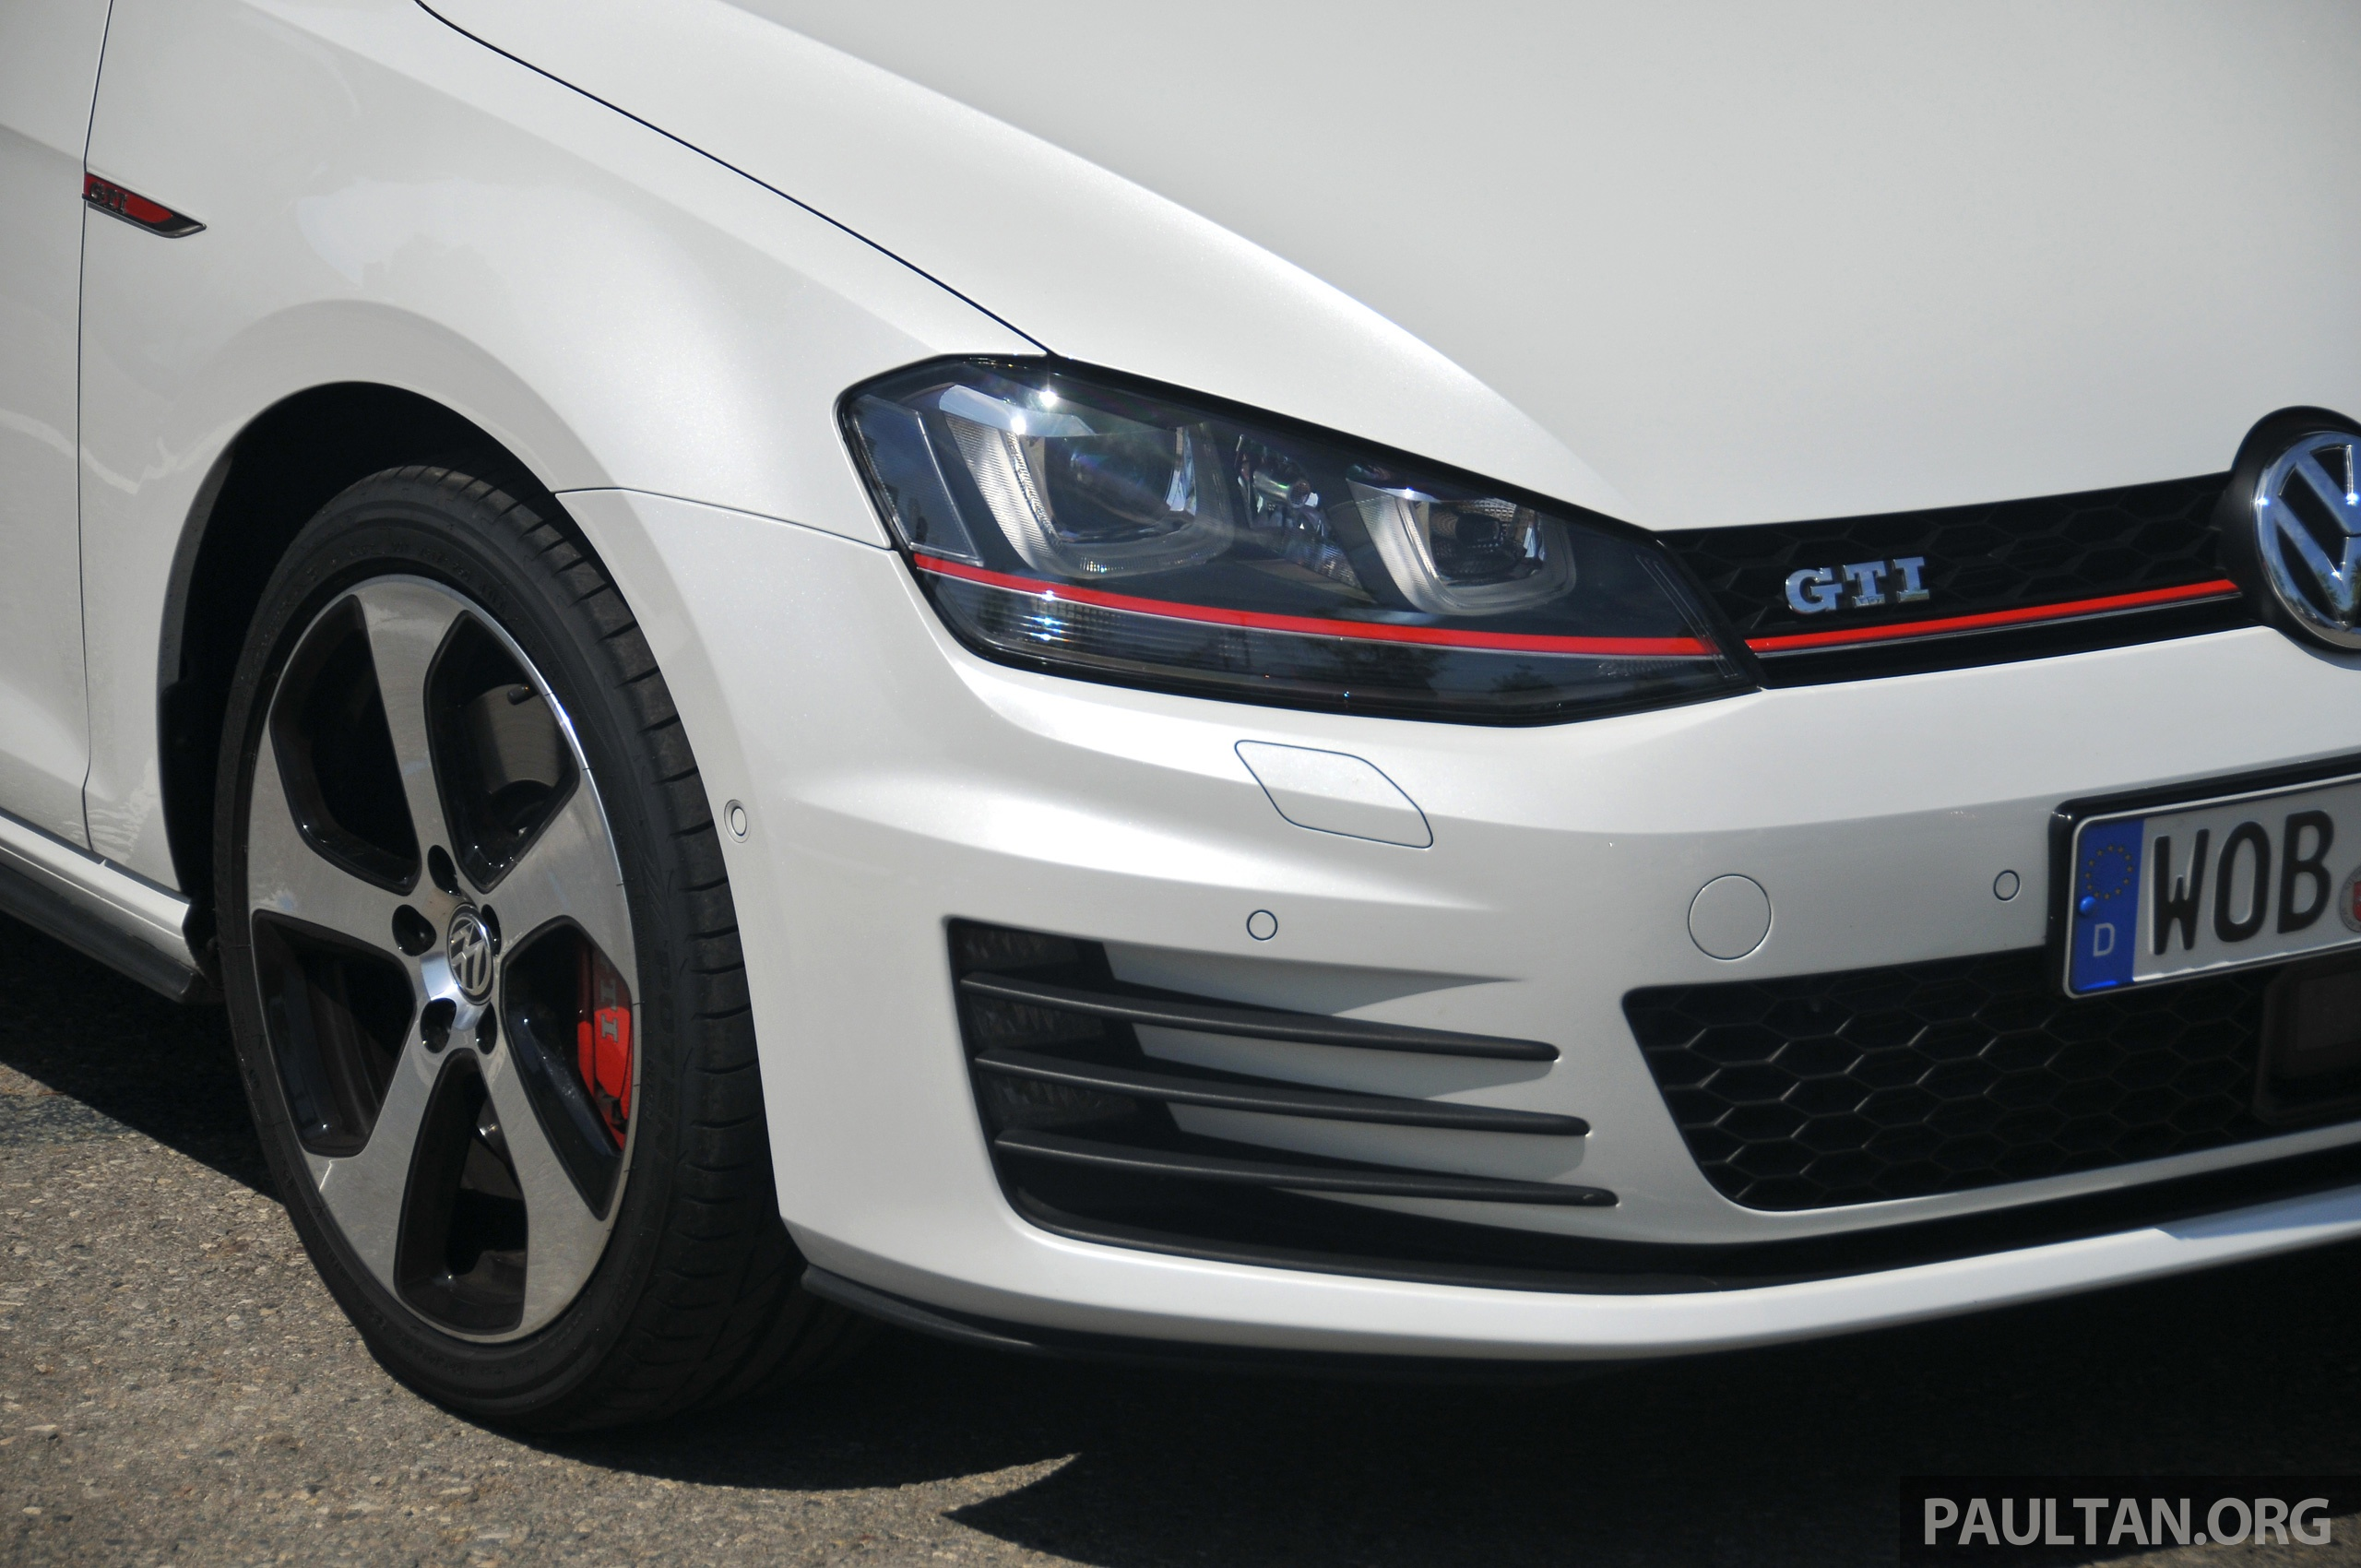 driven new 220 ps volkswagen golf gti mk7 tested image 189487. Black Bedroom Furniture Sets. Home Design Ideas